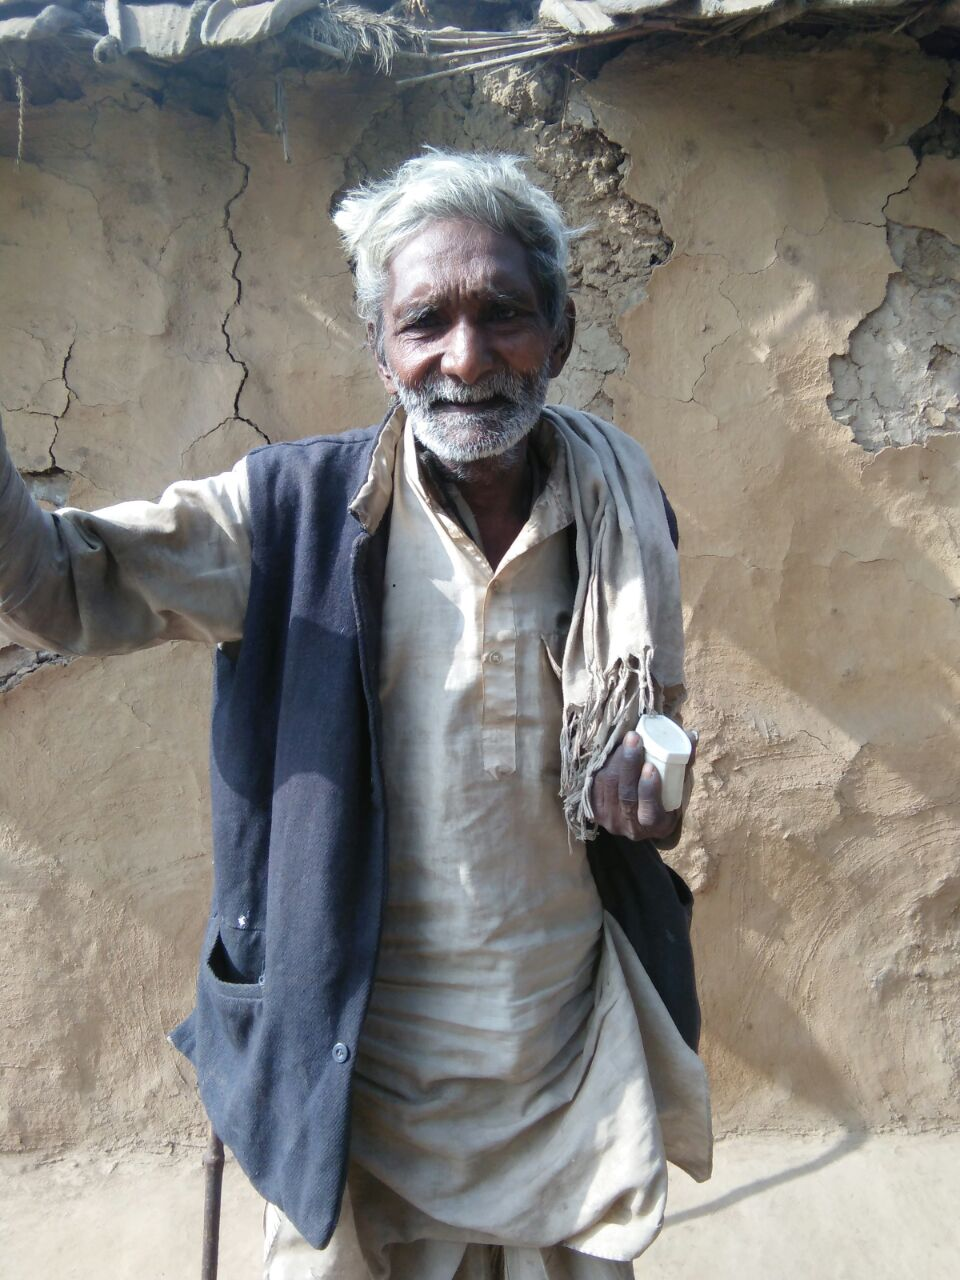 Sarwan Valmiki has no money and is surviving on what he receives from neighbours. Photo: Dhirendra K Jha